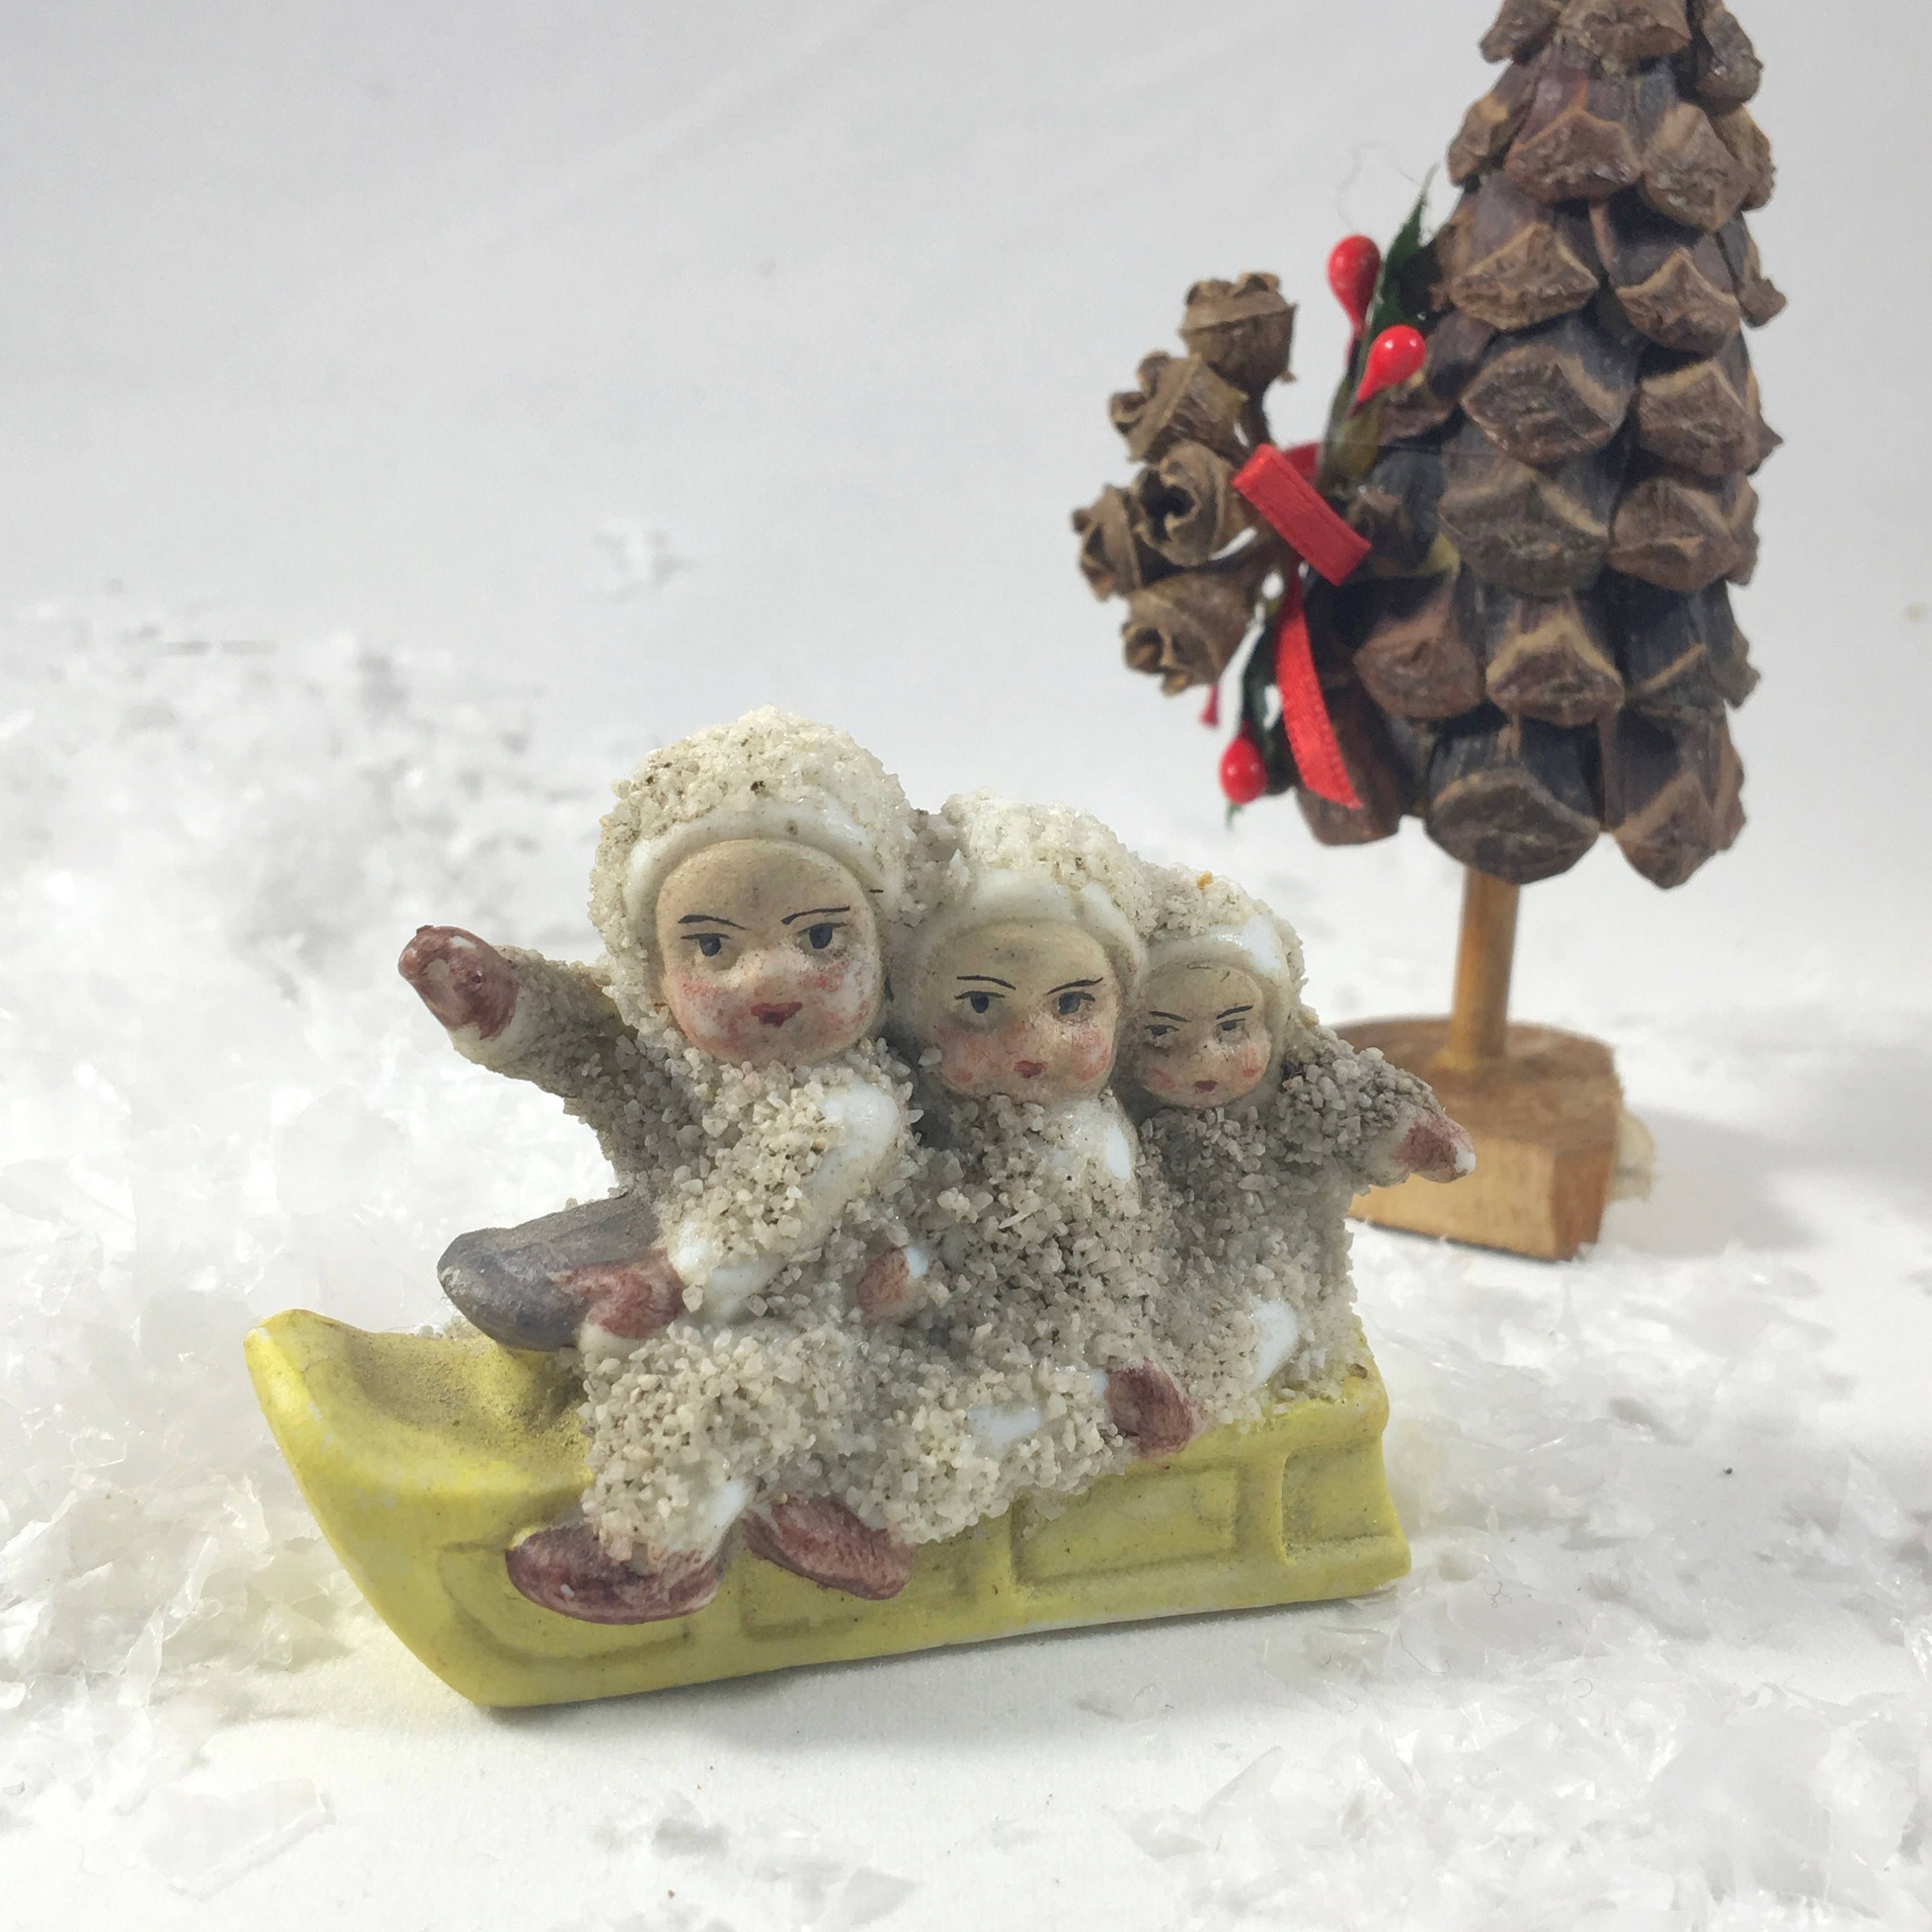 Antique snow babies on sled ~ early 1900s putz figurines ...